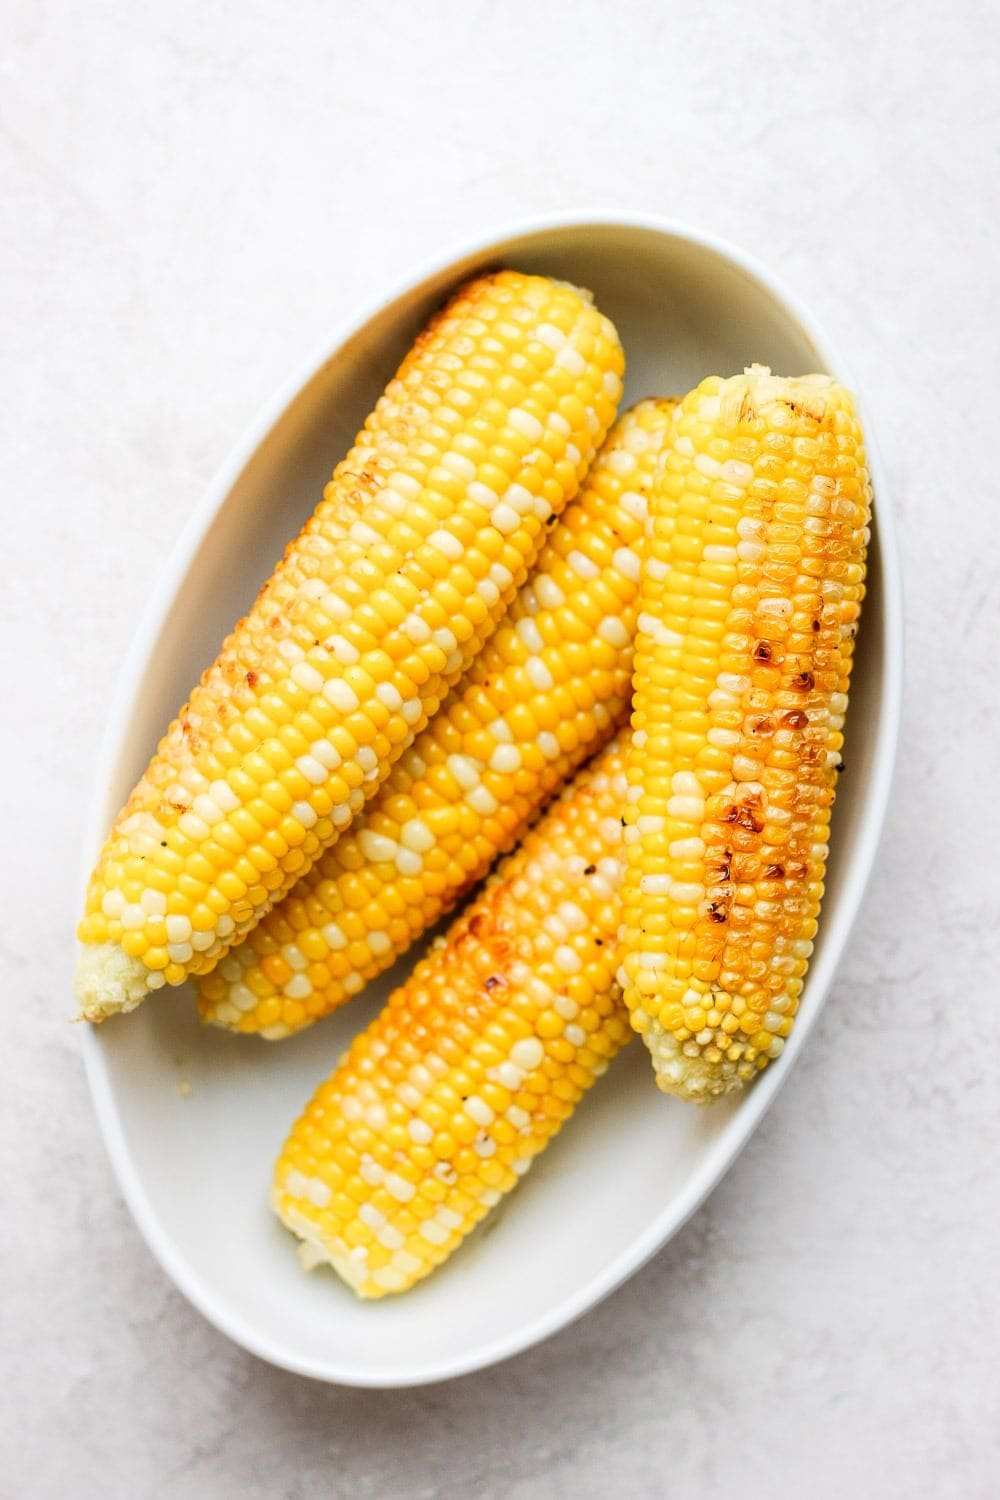 grilled corn on the cob after it has been grilled